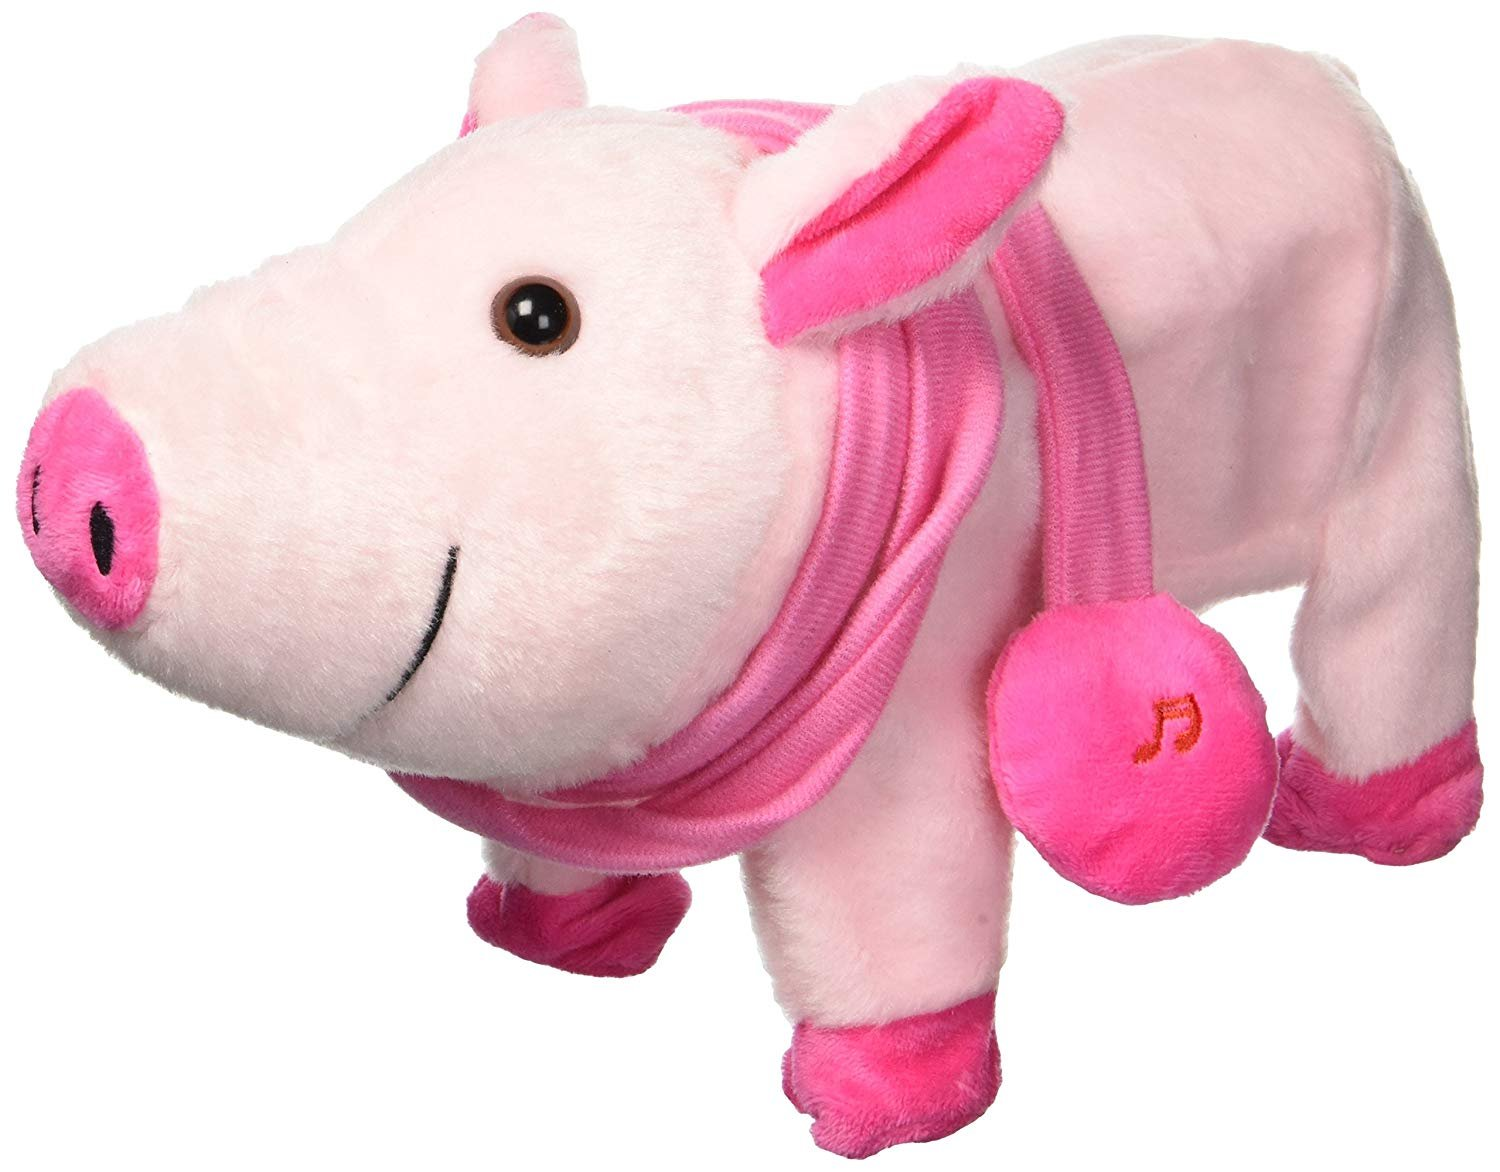 AJ Toys & Games Walking and Dancing Pig, Toy Stuffed Plush Pig, Realistic Dancing & Walking Actions with Music (Colors May Vary)